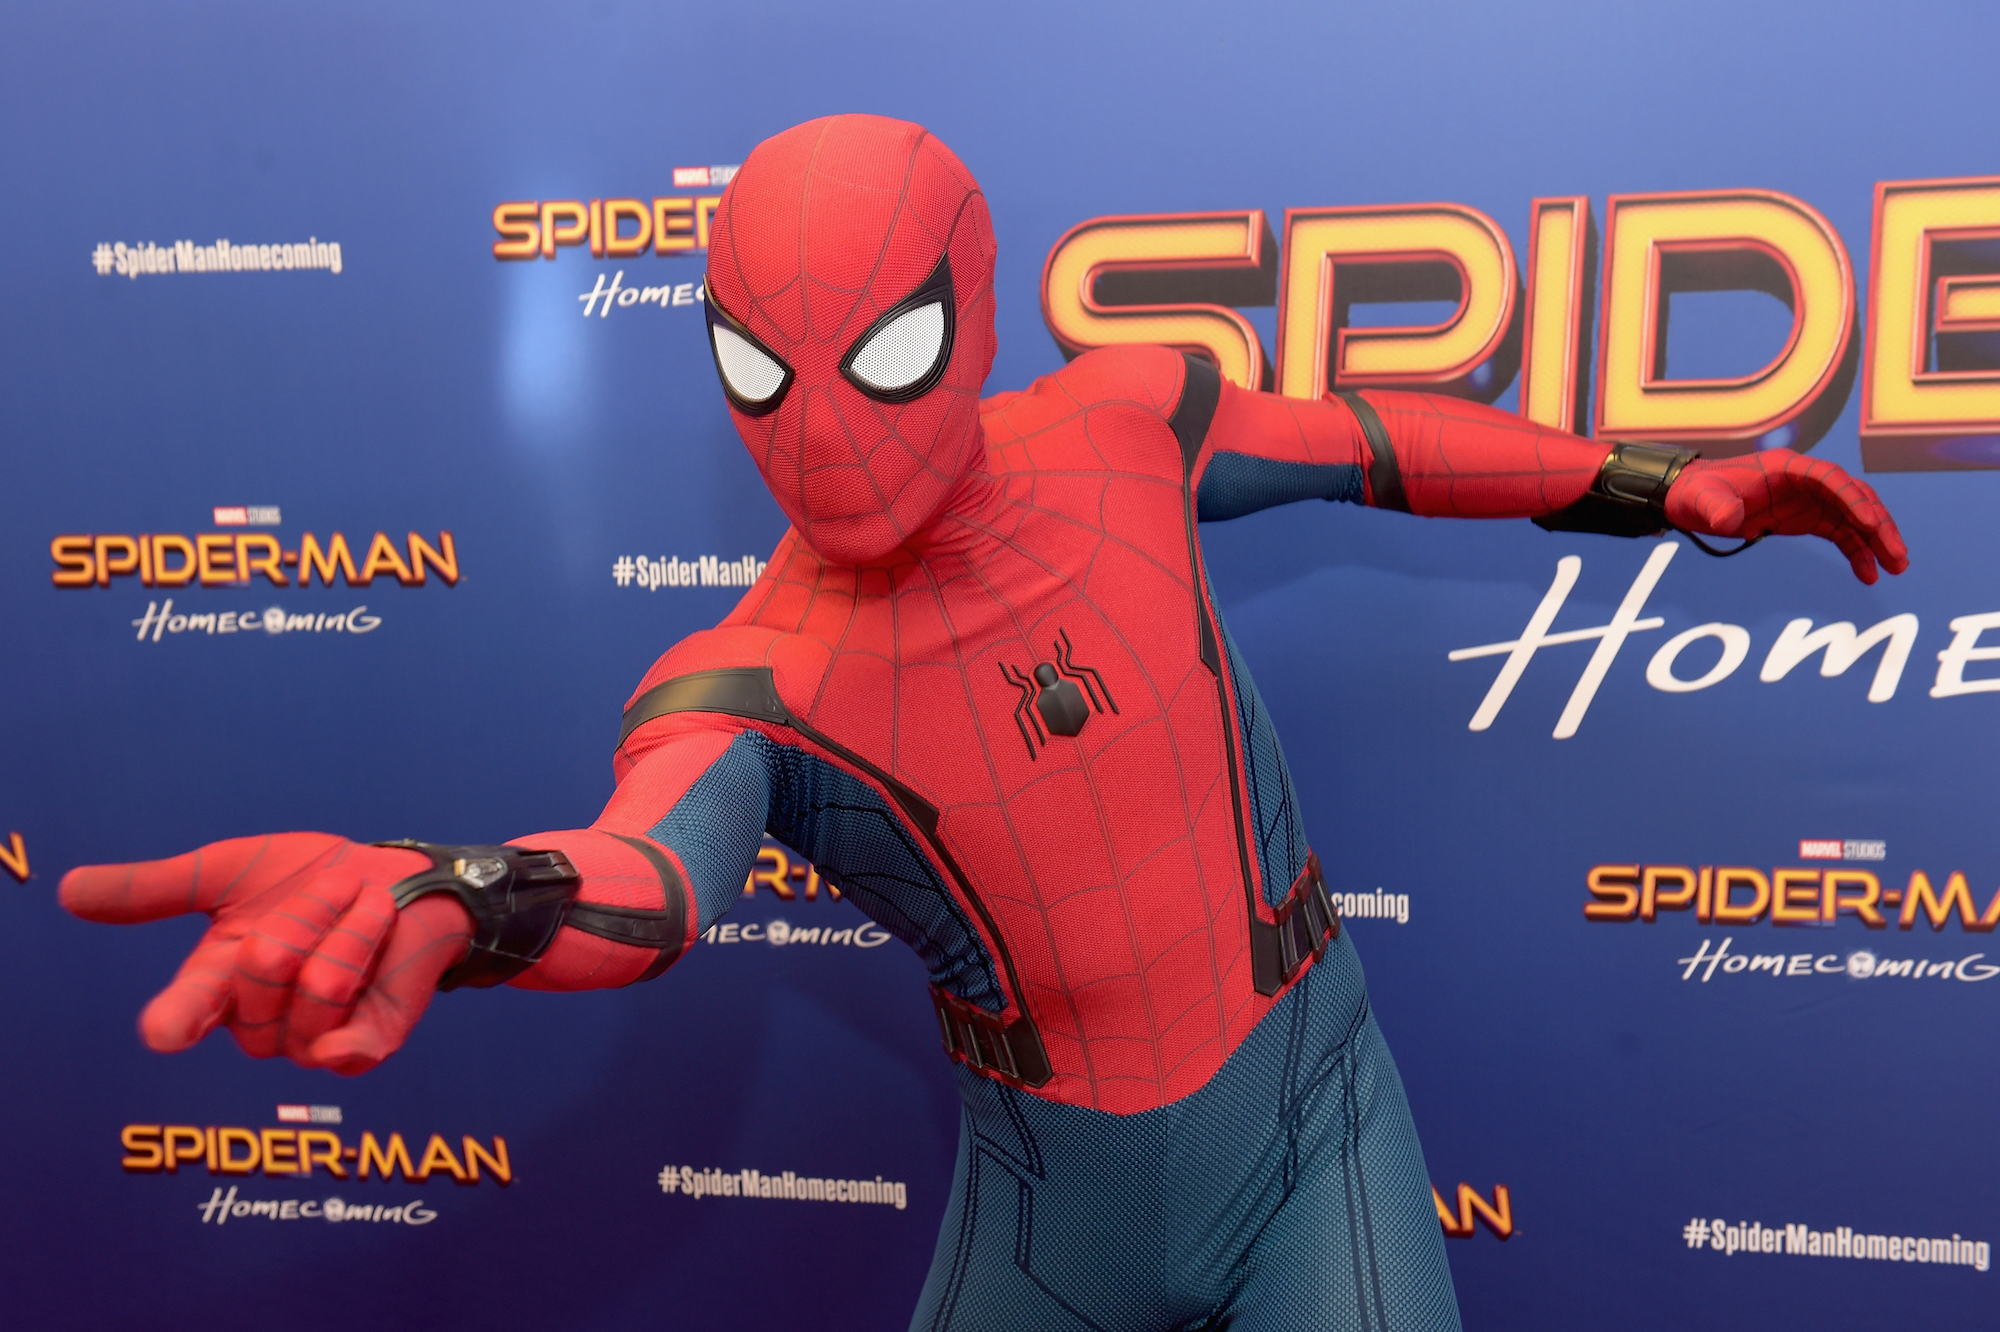 Spiderman at the 'Spiderman: Homecoming' New York First Responders' Screening on June 26, 2017